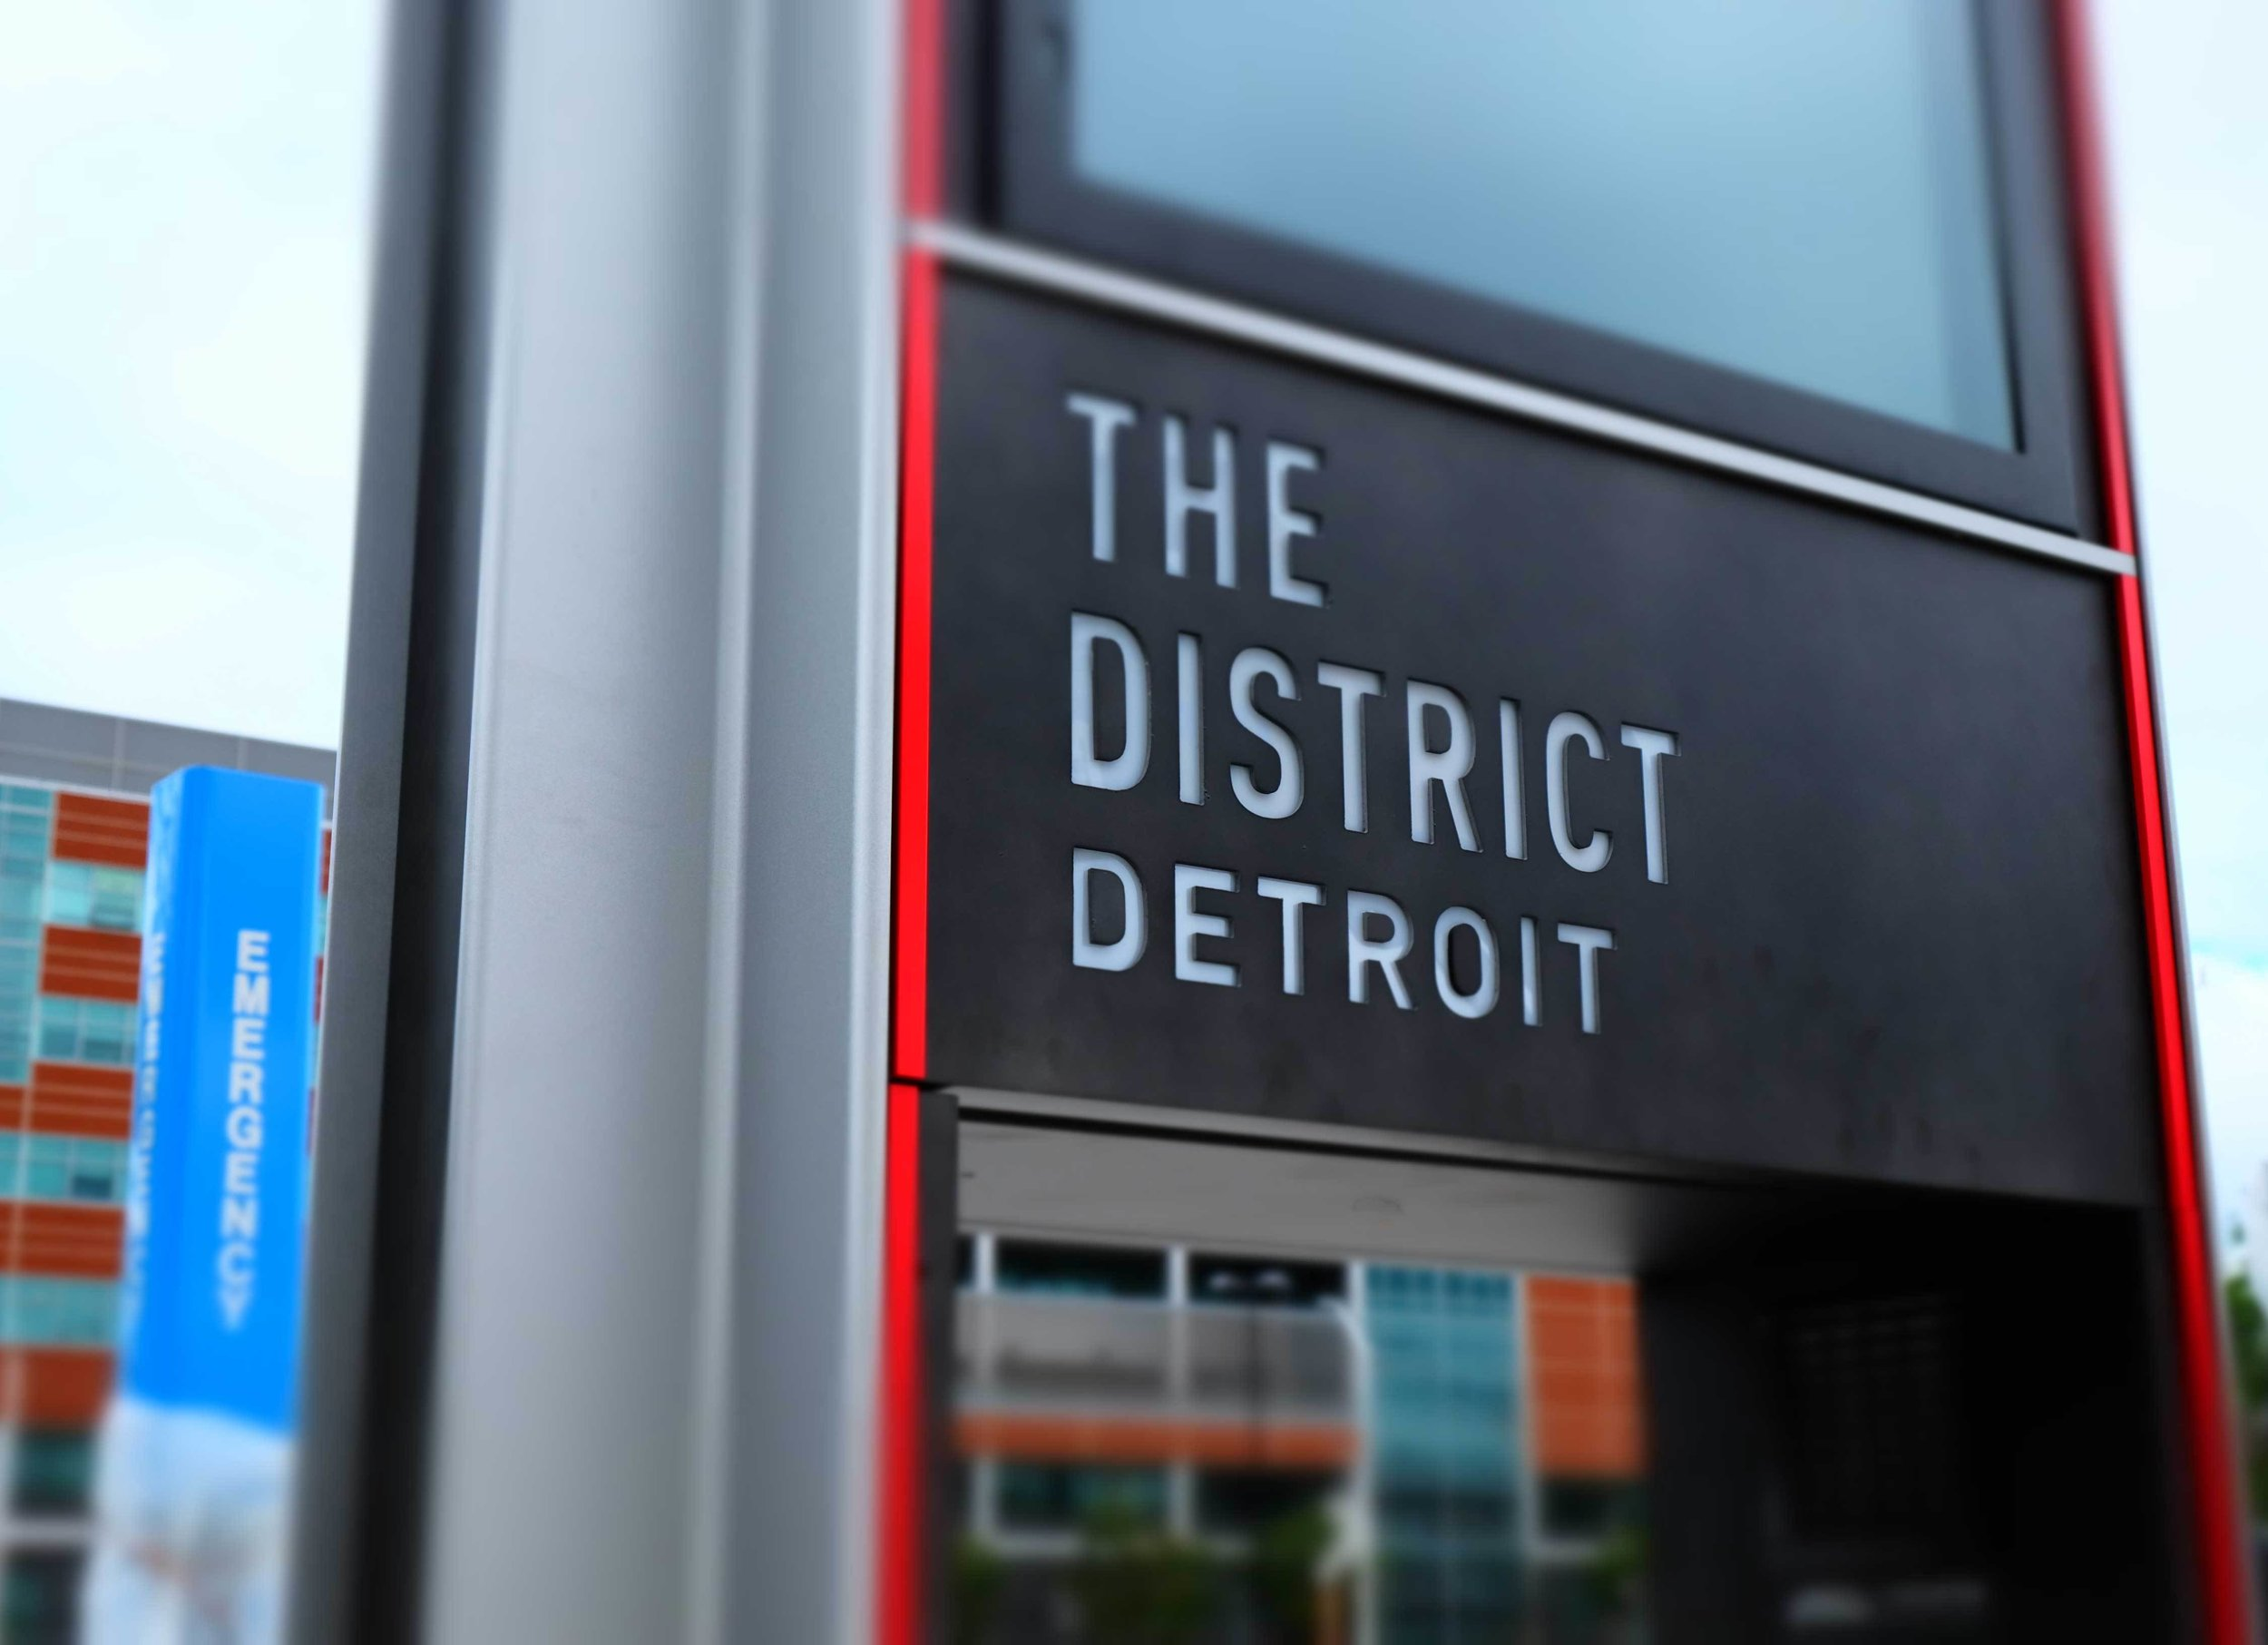 Detroit District Wayfinding.jpg